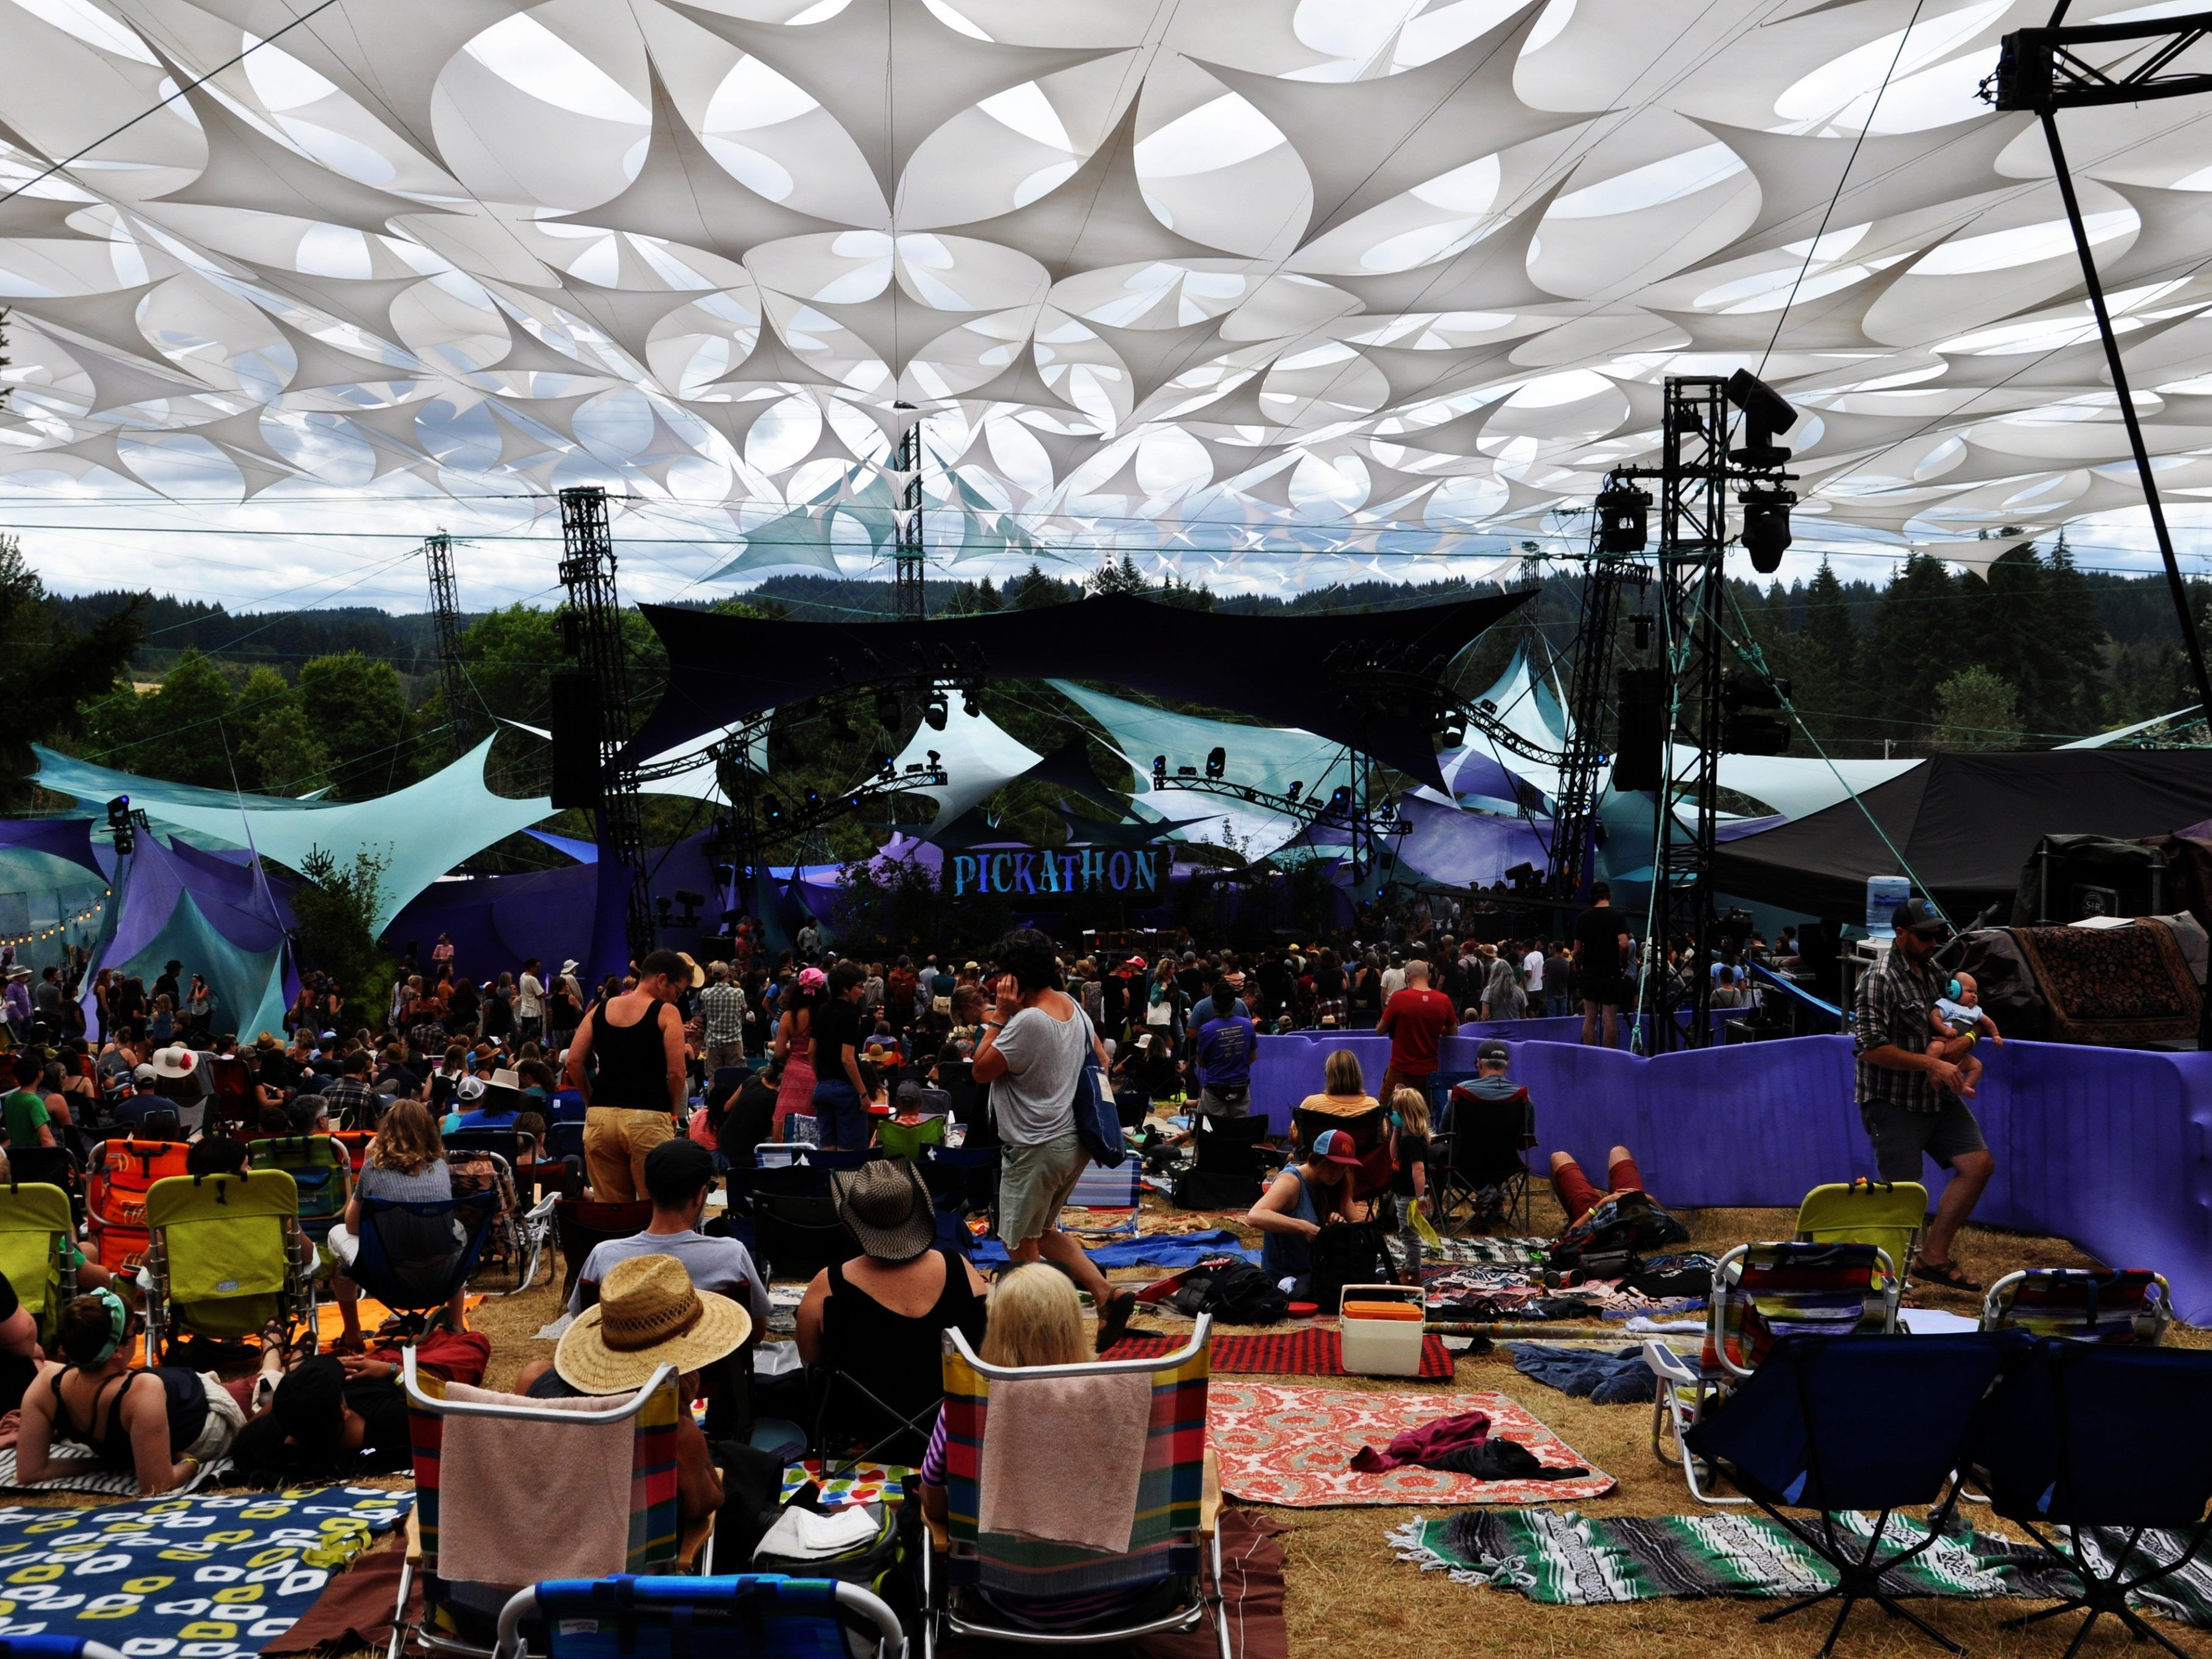 Das Pickathon feeling